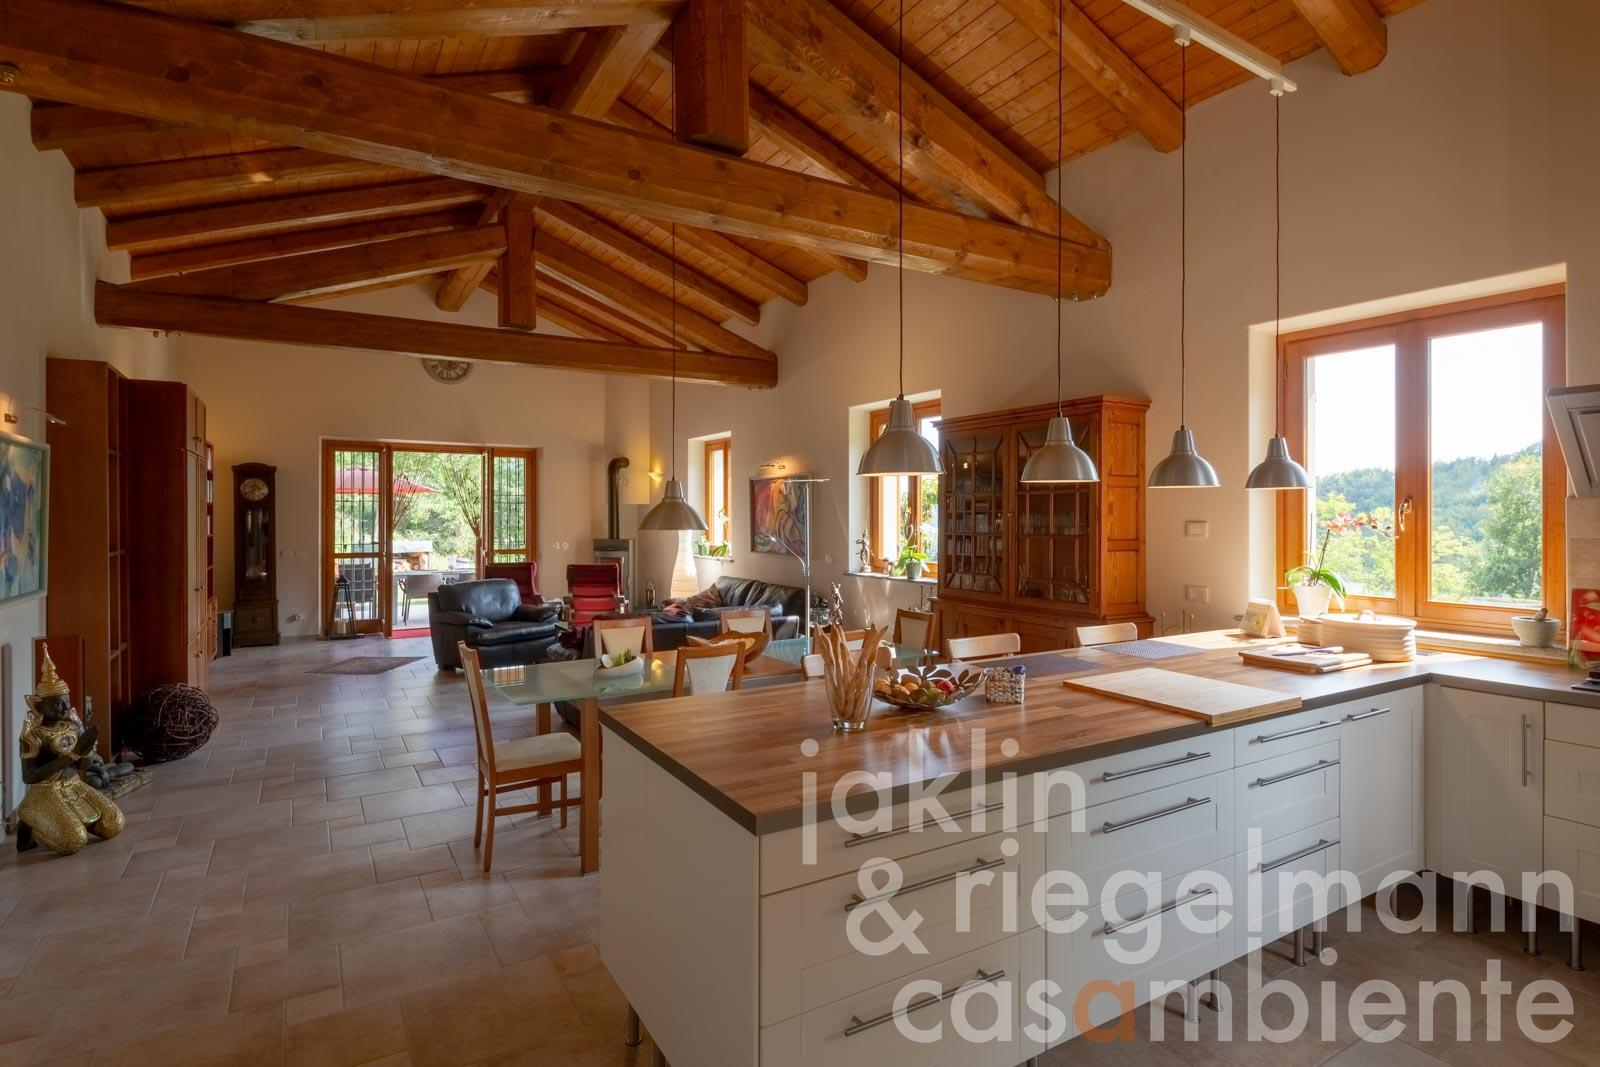 Peacefully located newly built house for sale south of Alba in the Langhe